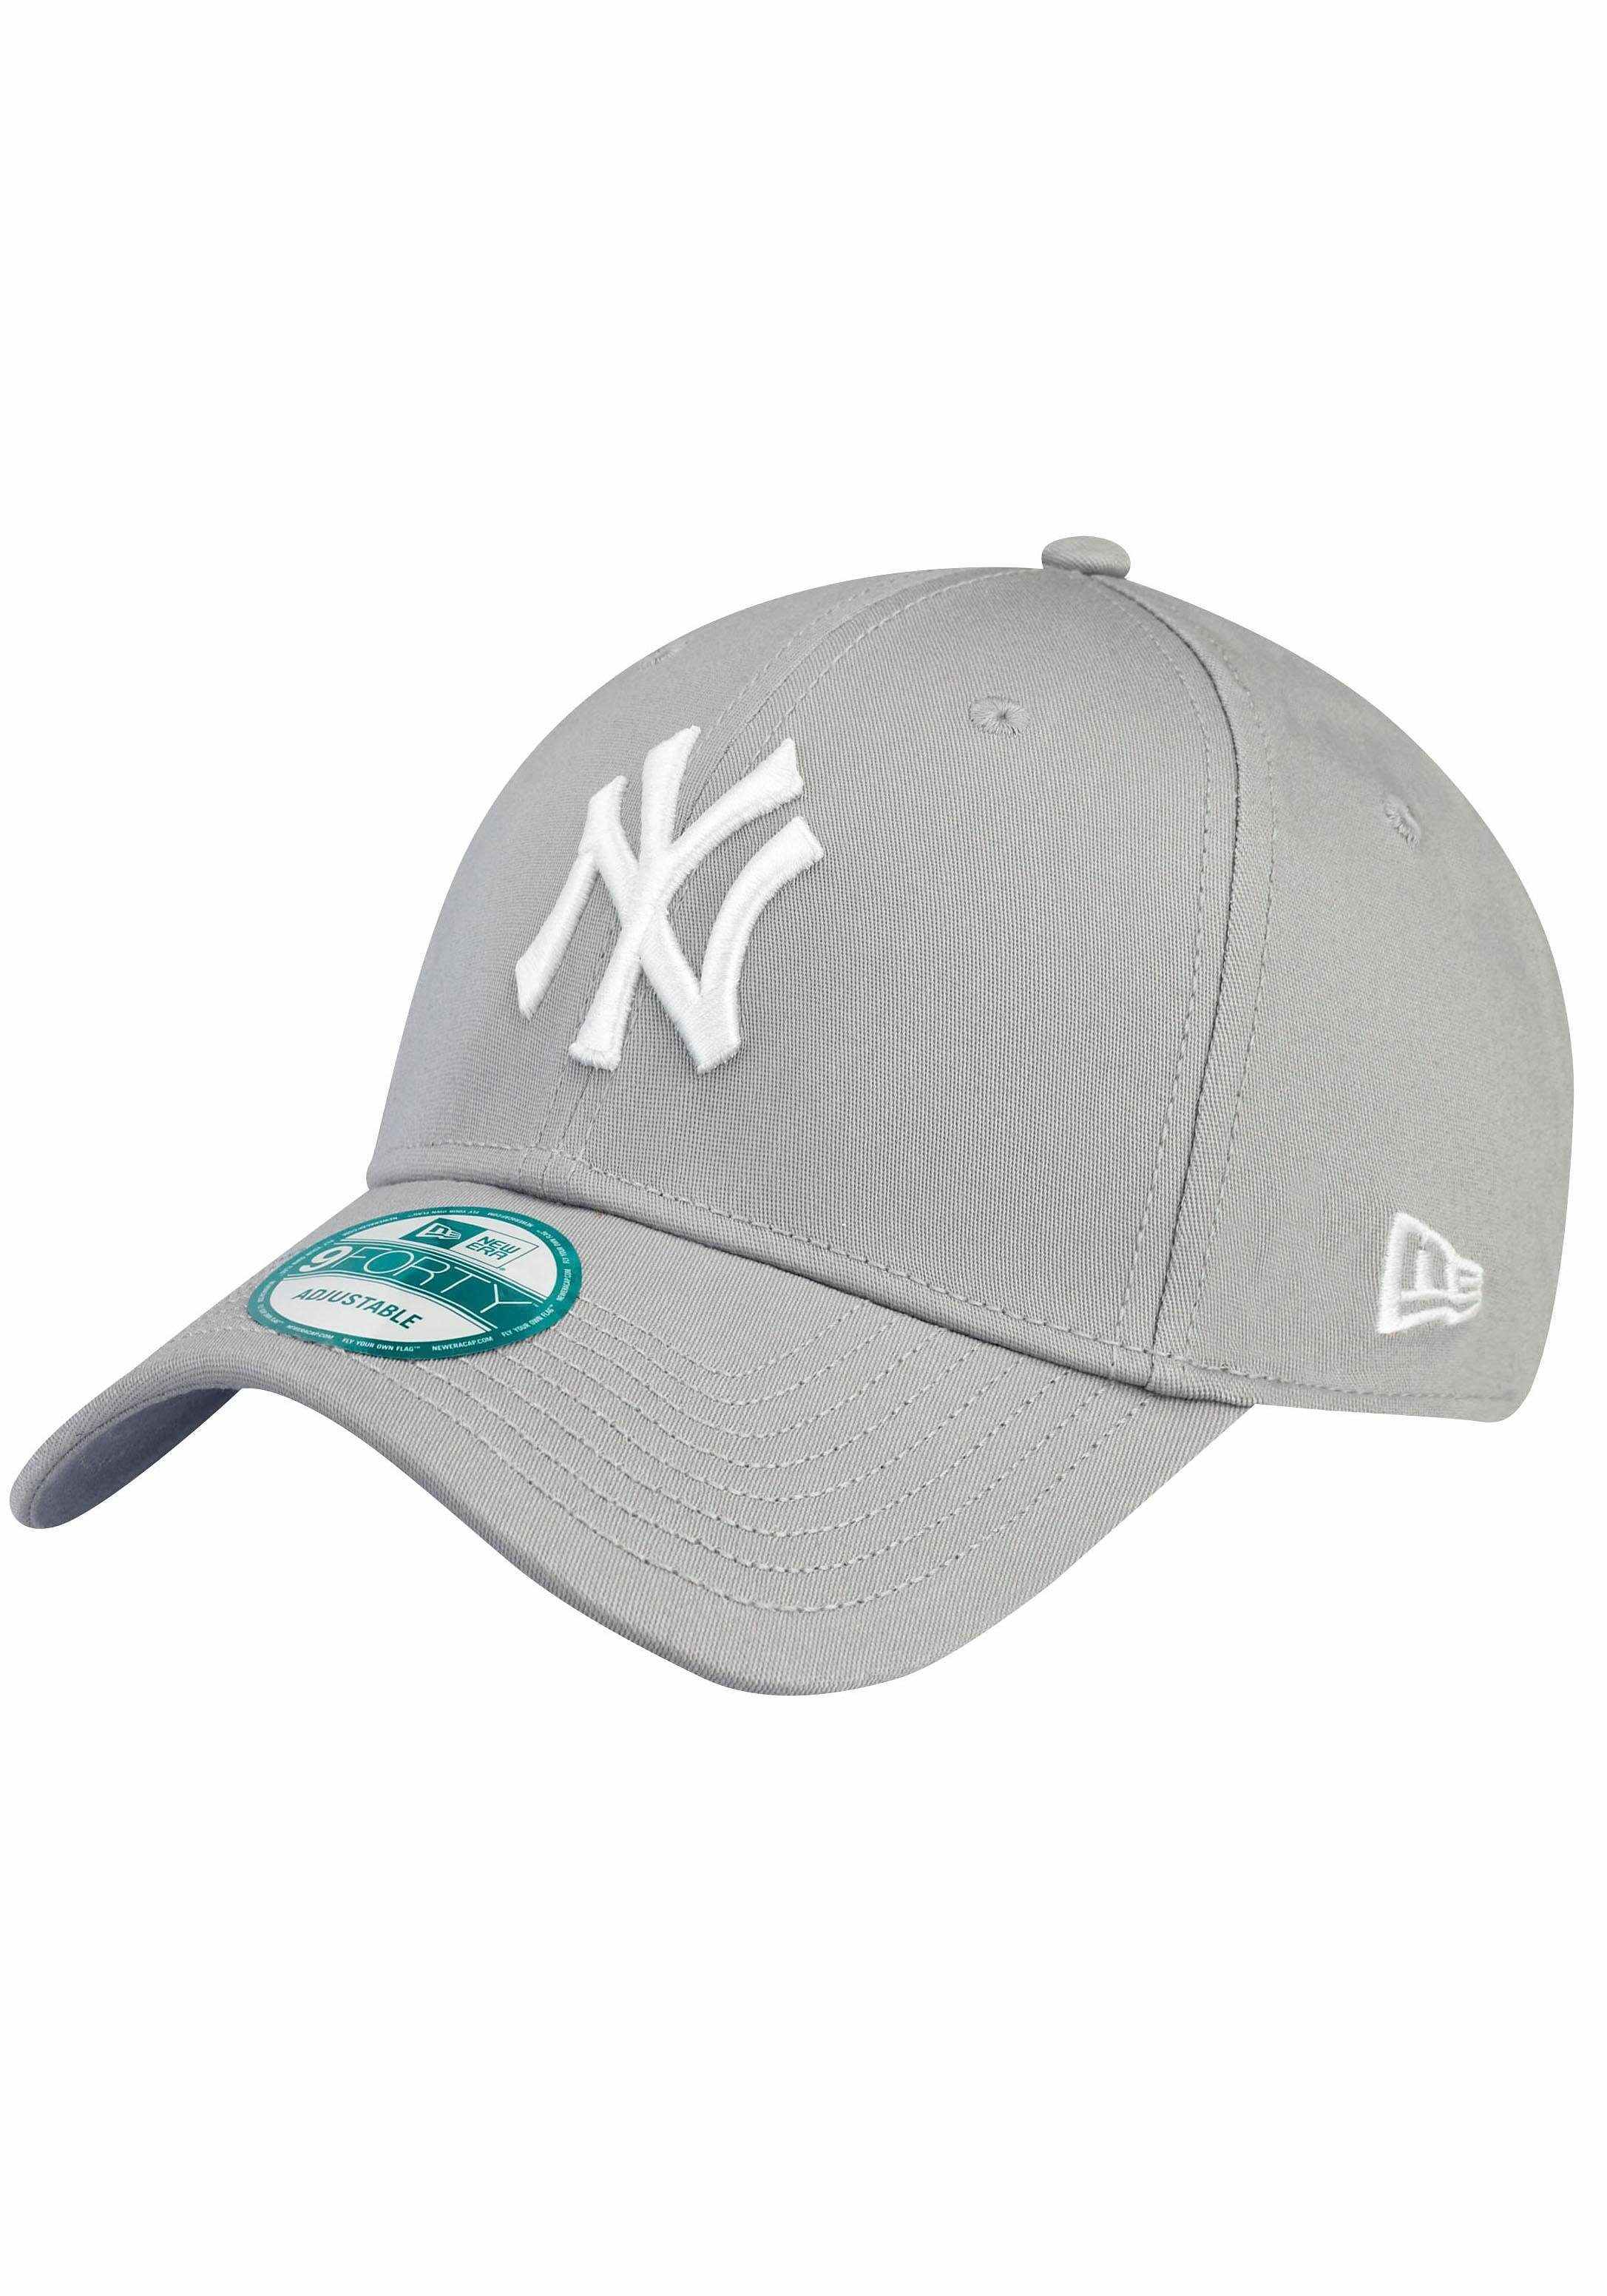 New Era Baseball Cap, 39Thirty flexfitted, New York Yankees